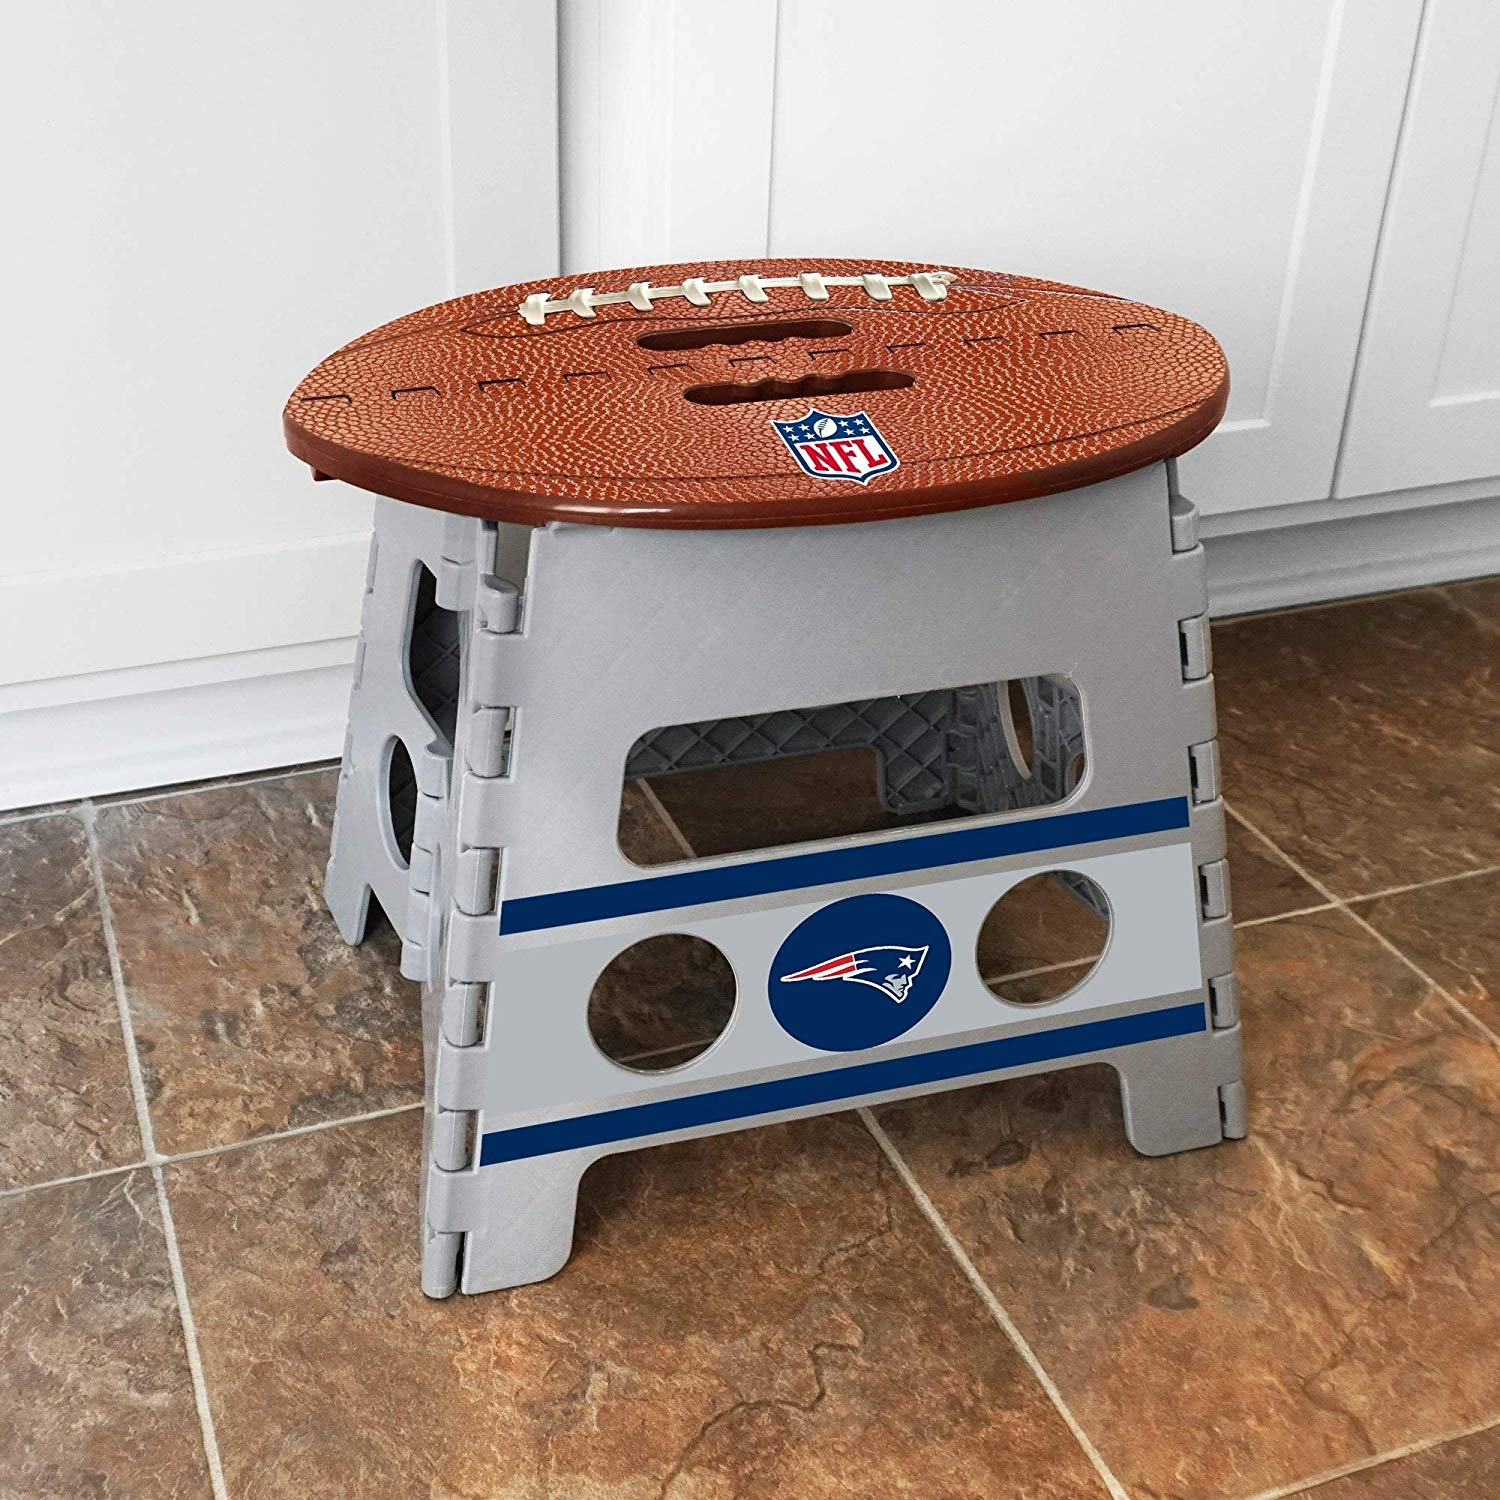 NFL New England Patriots Folding Step Stool Football Shape Sports Design 1 Step Folding Stool Handle Bedroom Bathroom Kitchen Garden Indoor 250 Lbs